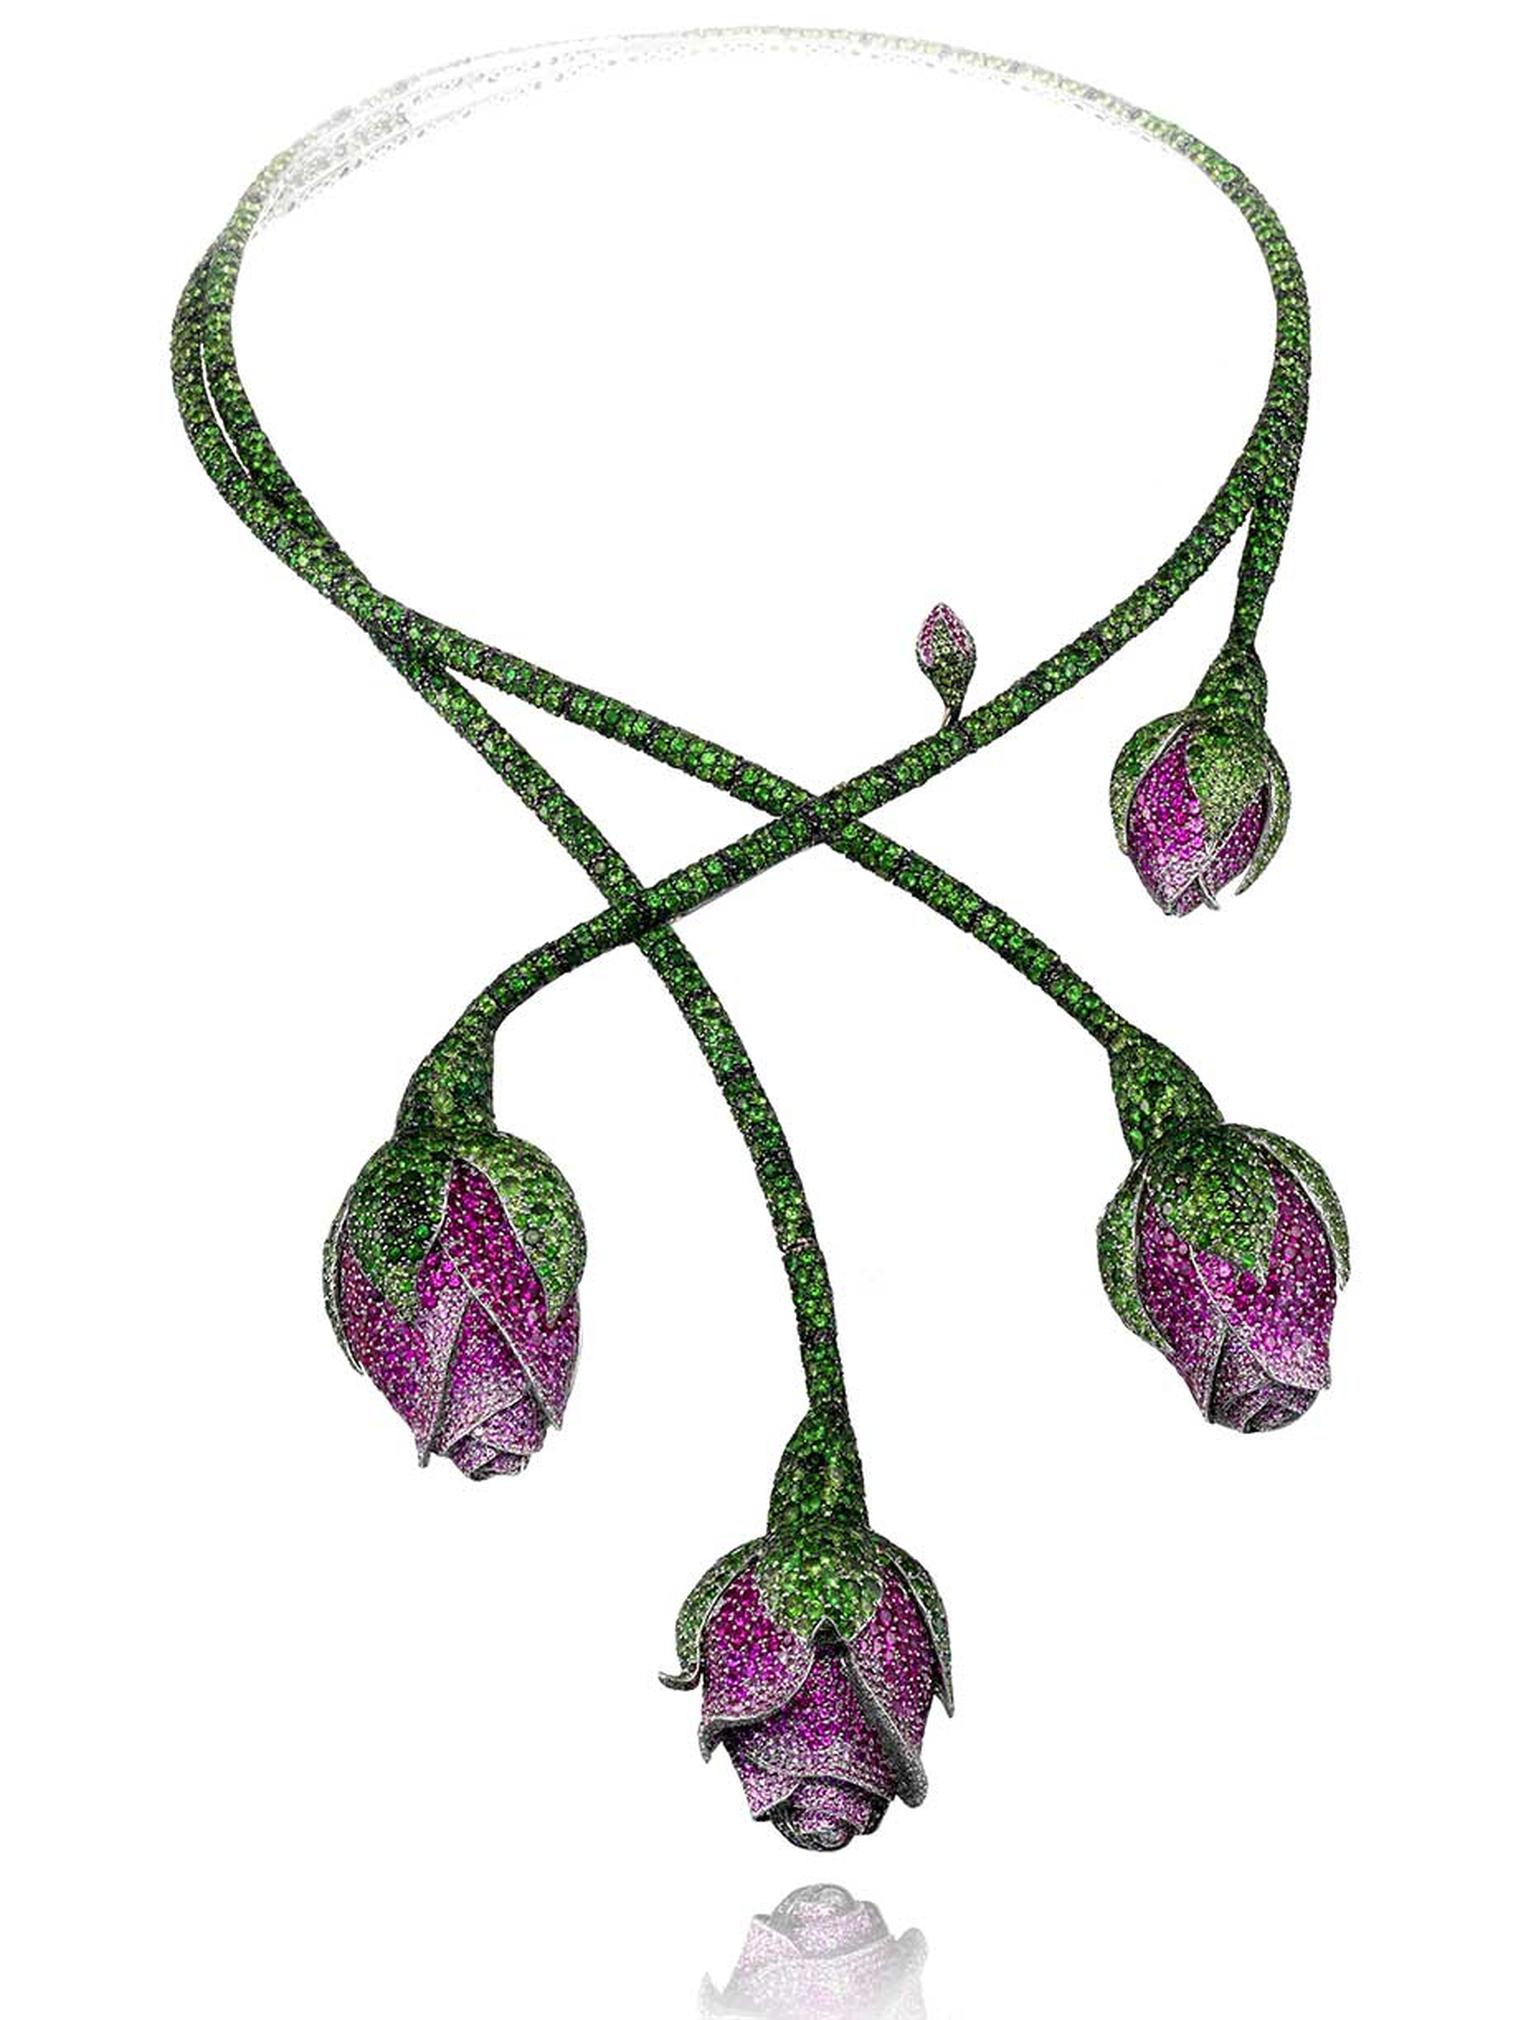 The tsavorite, pink sapphire and ruby floral necklace from Chopard's Red Carpet Collection worn by Cate Blanchett at the Cannes Film Festival